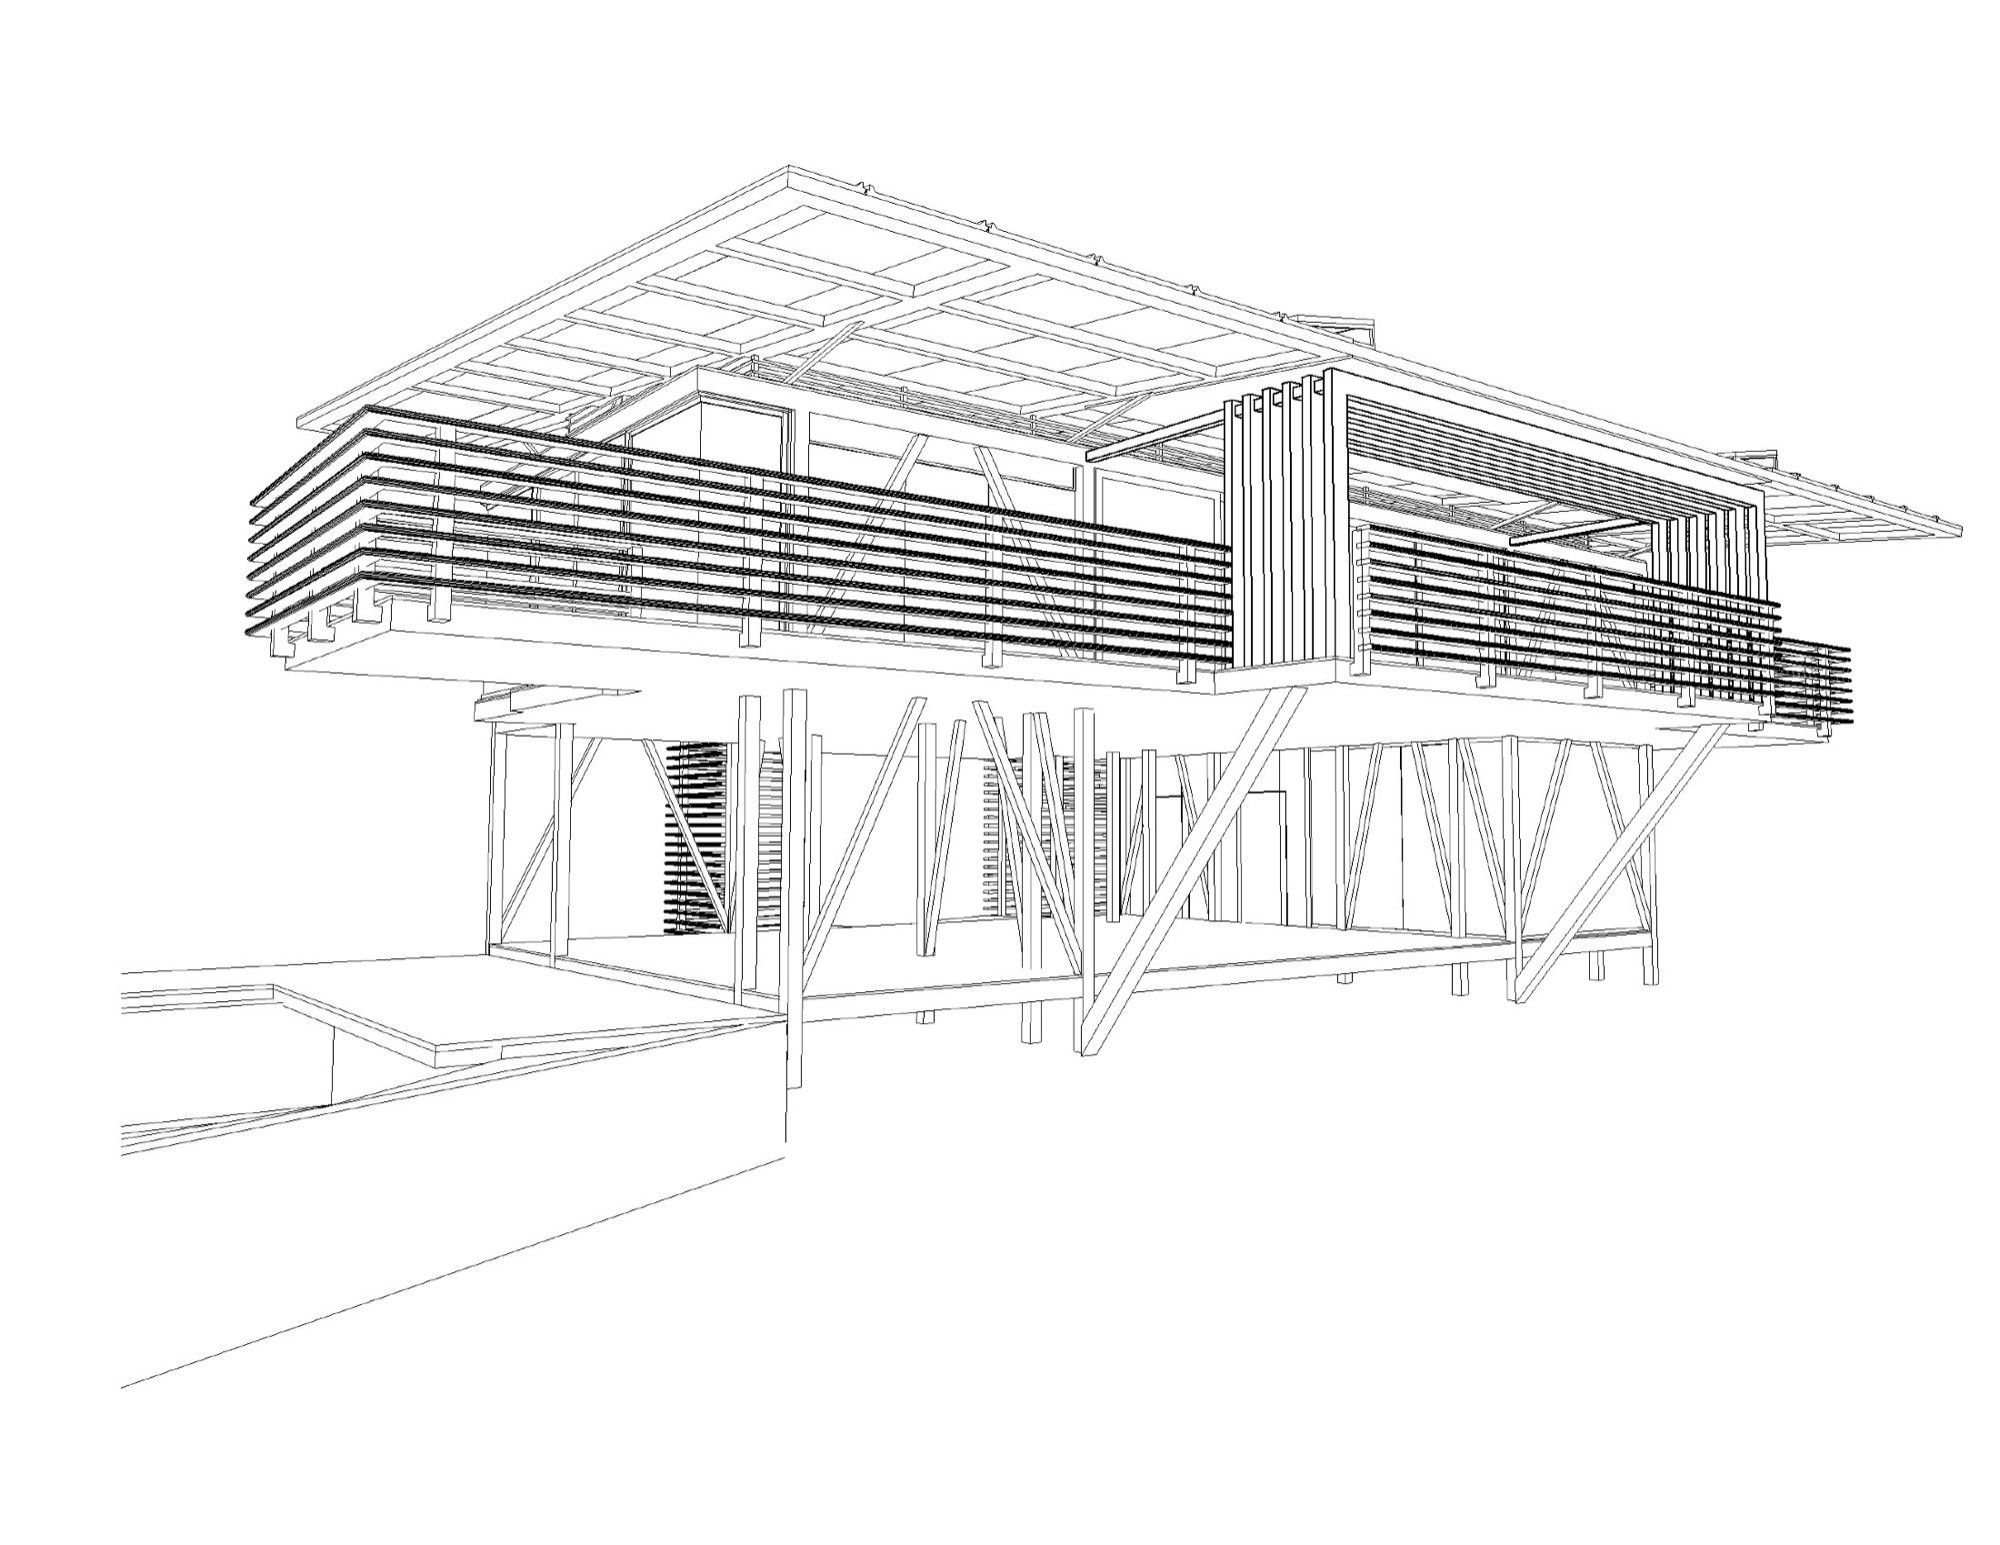 Home Design Sketch Gallery Of Iseami House Robles Arquitectos 23 Archy Way